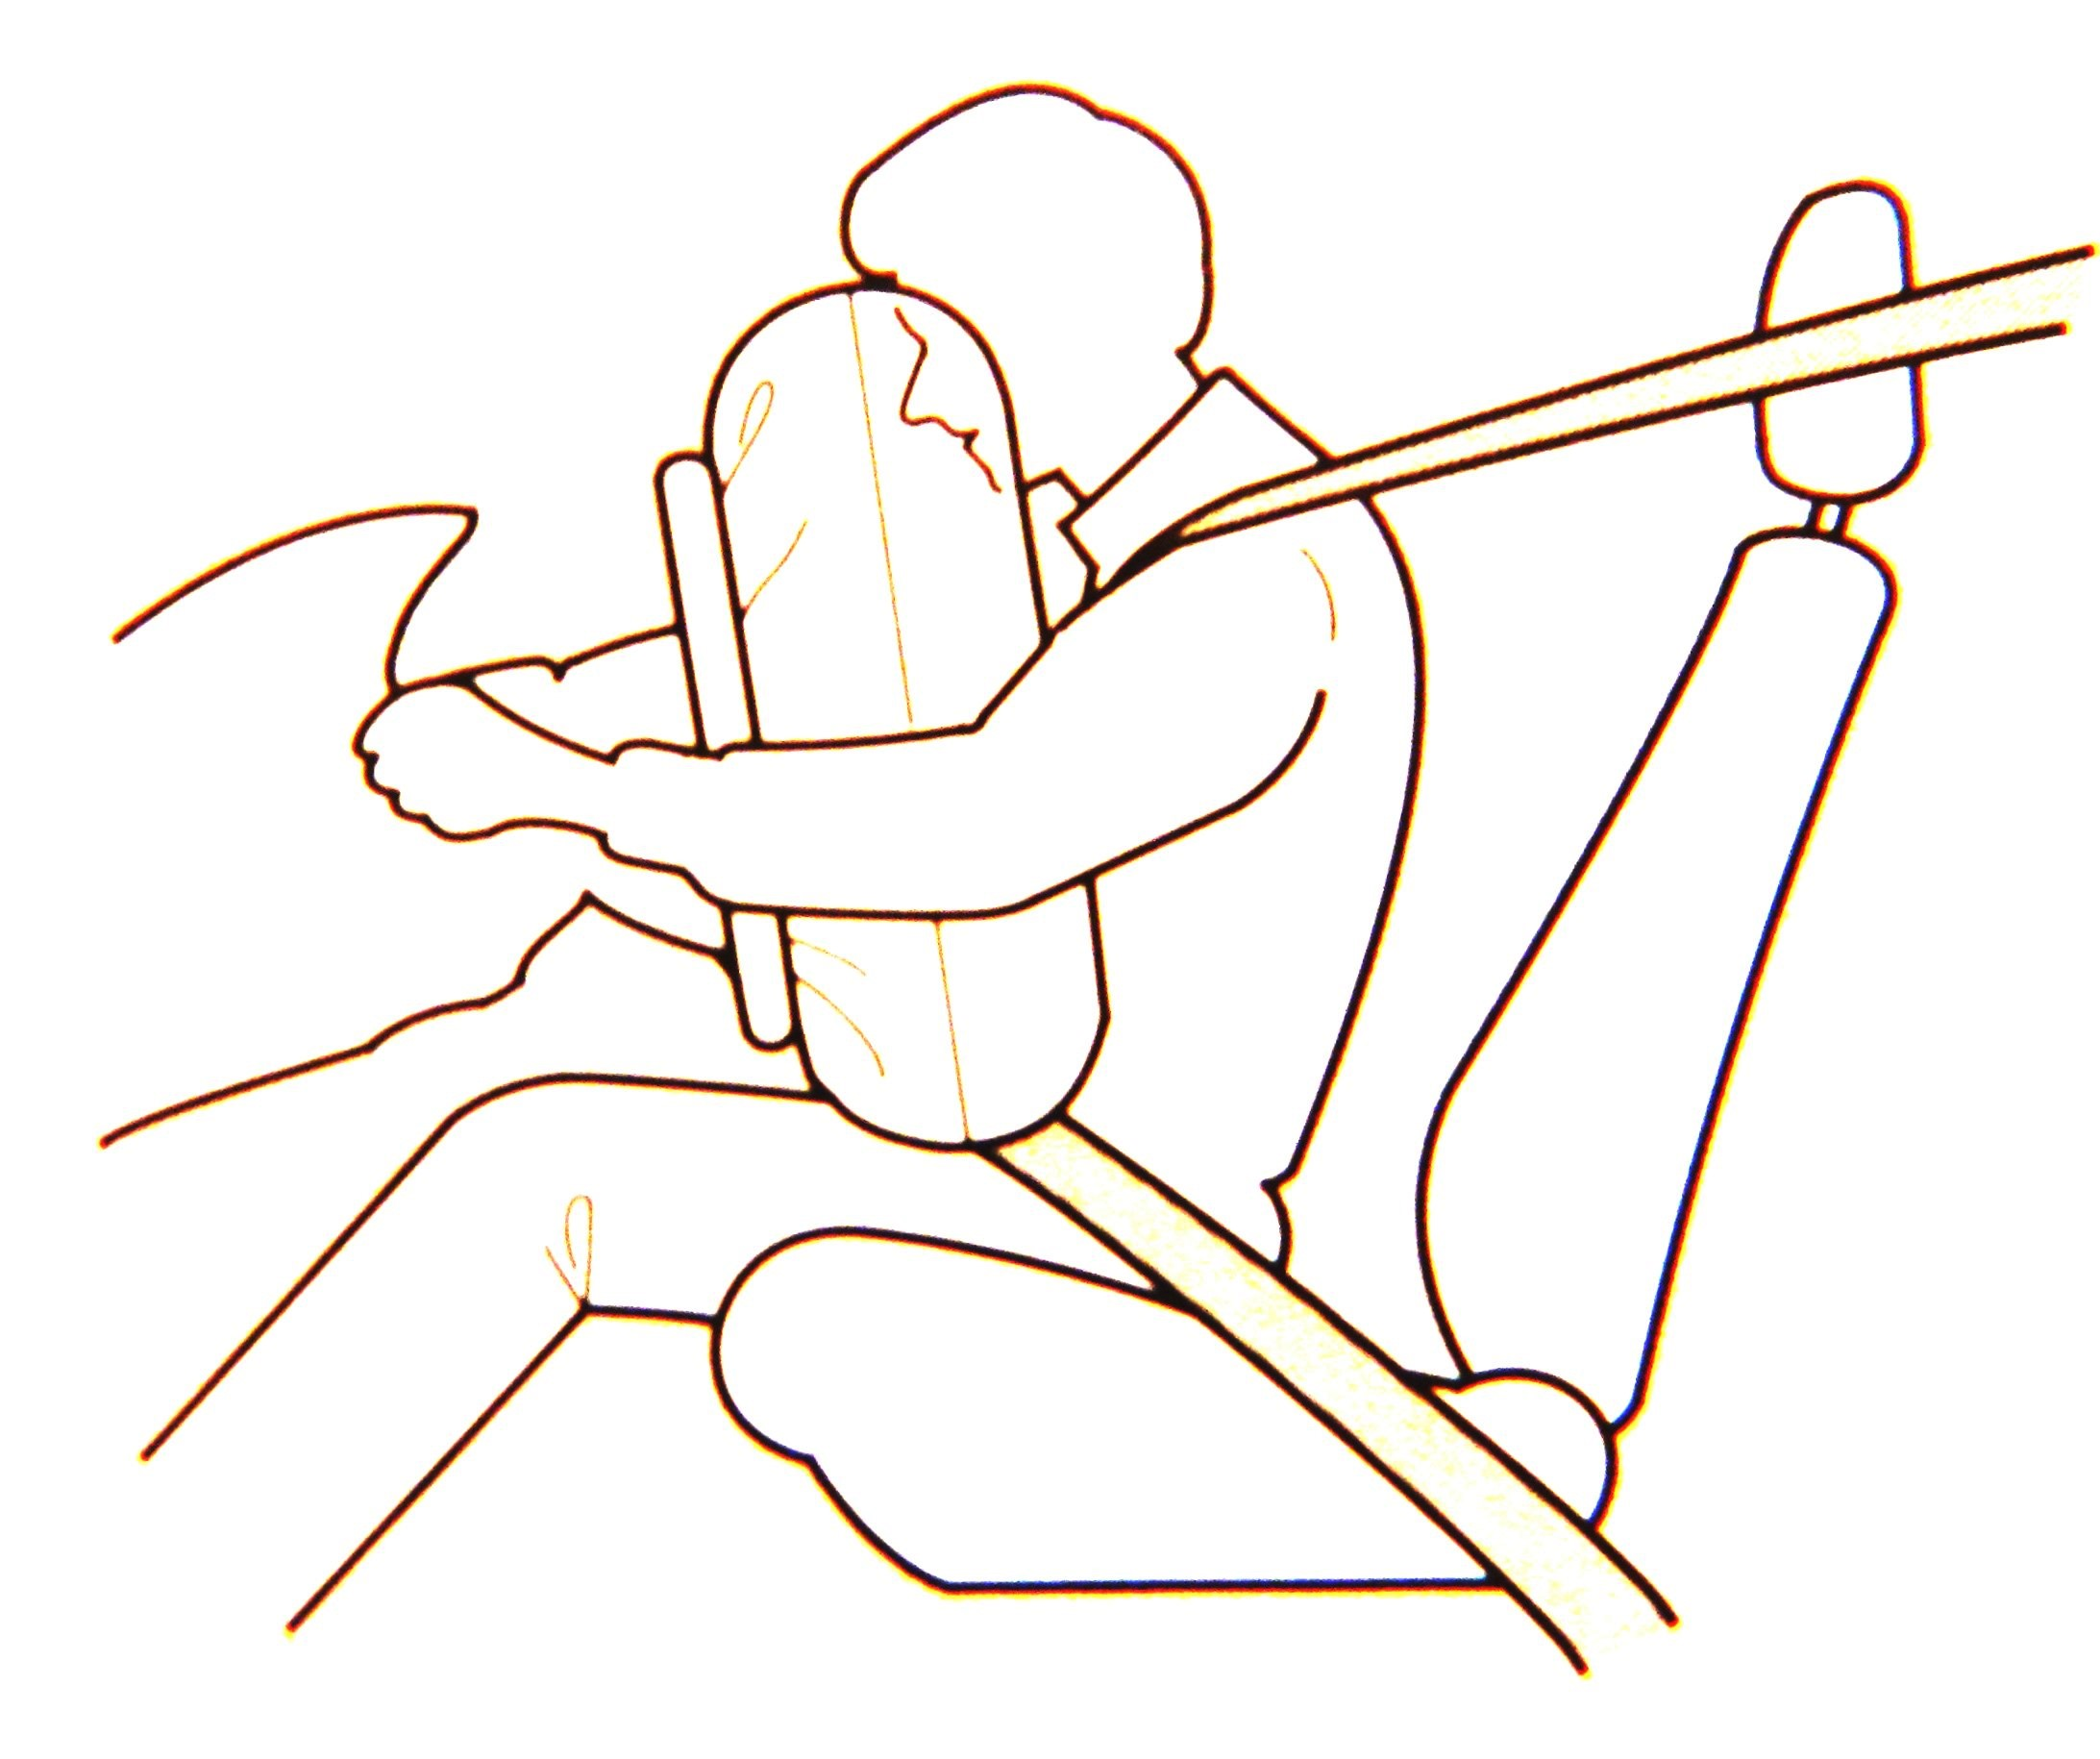 Airbags for trucks clipart images gallery for Free Download.